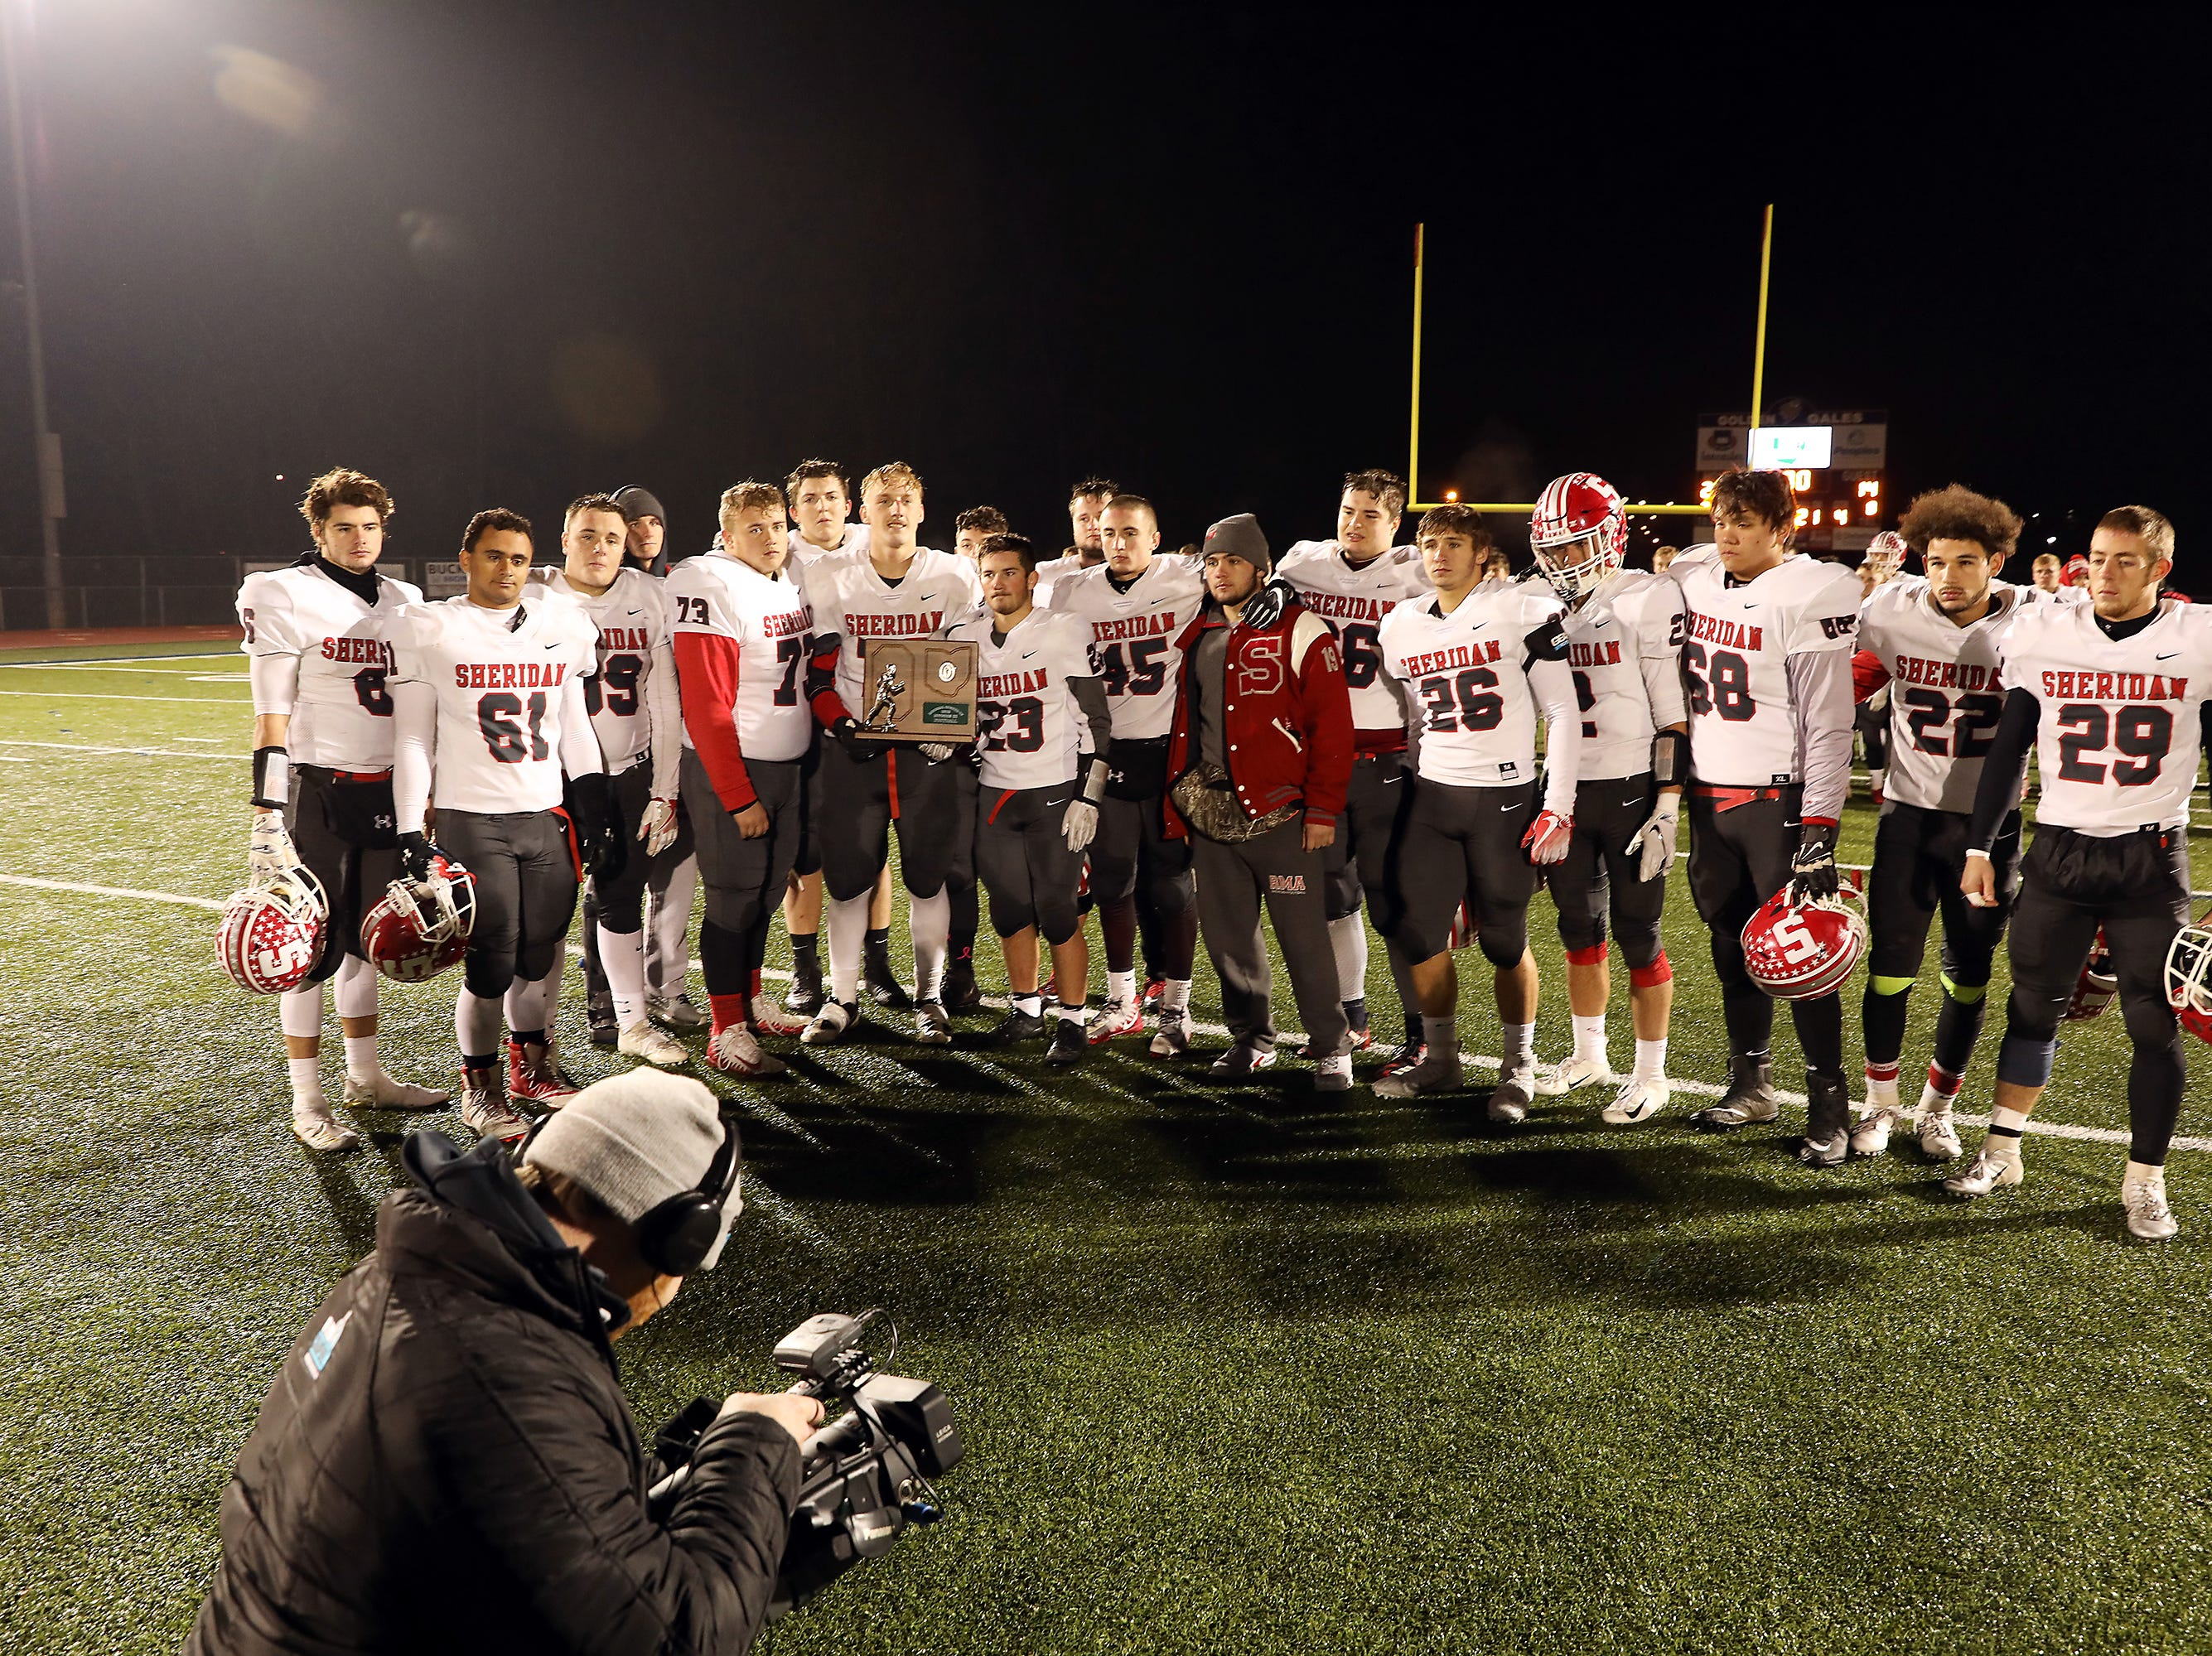 The Sheridan seniors pose for a picture after falling to Eastmoor.